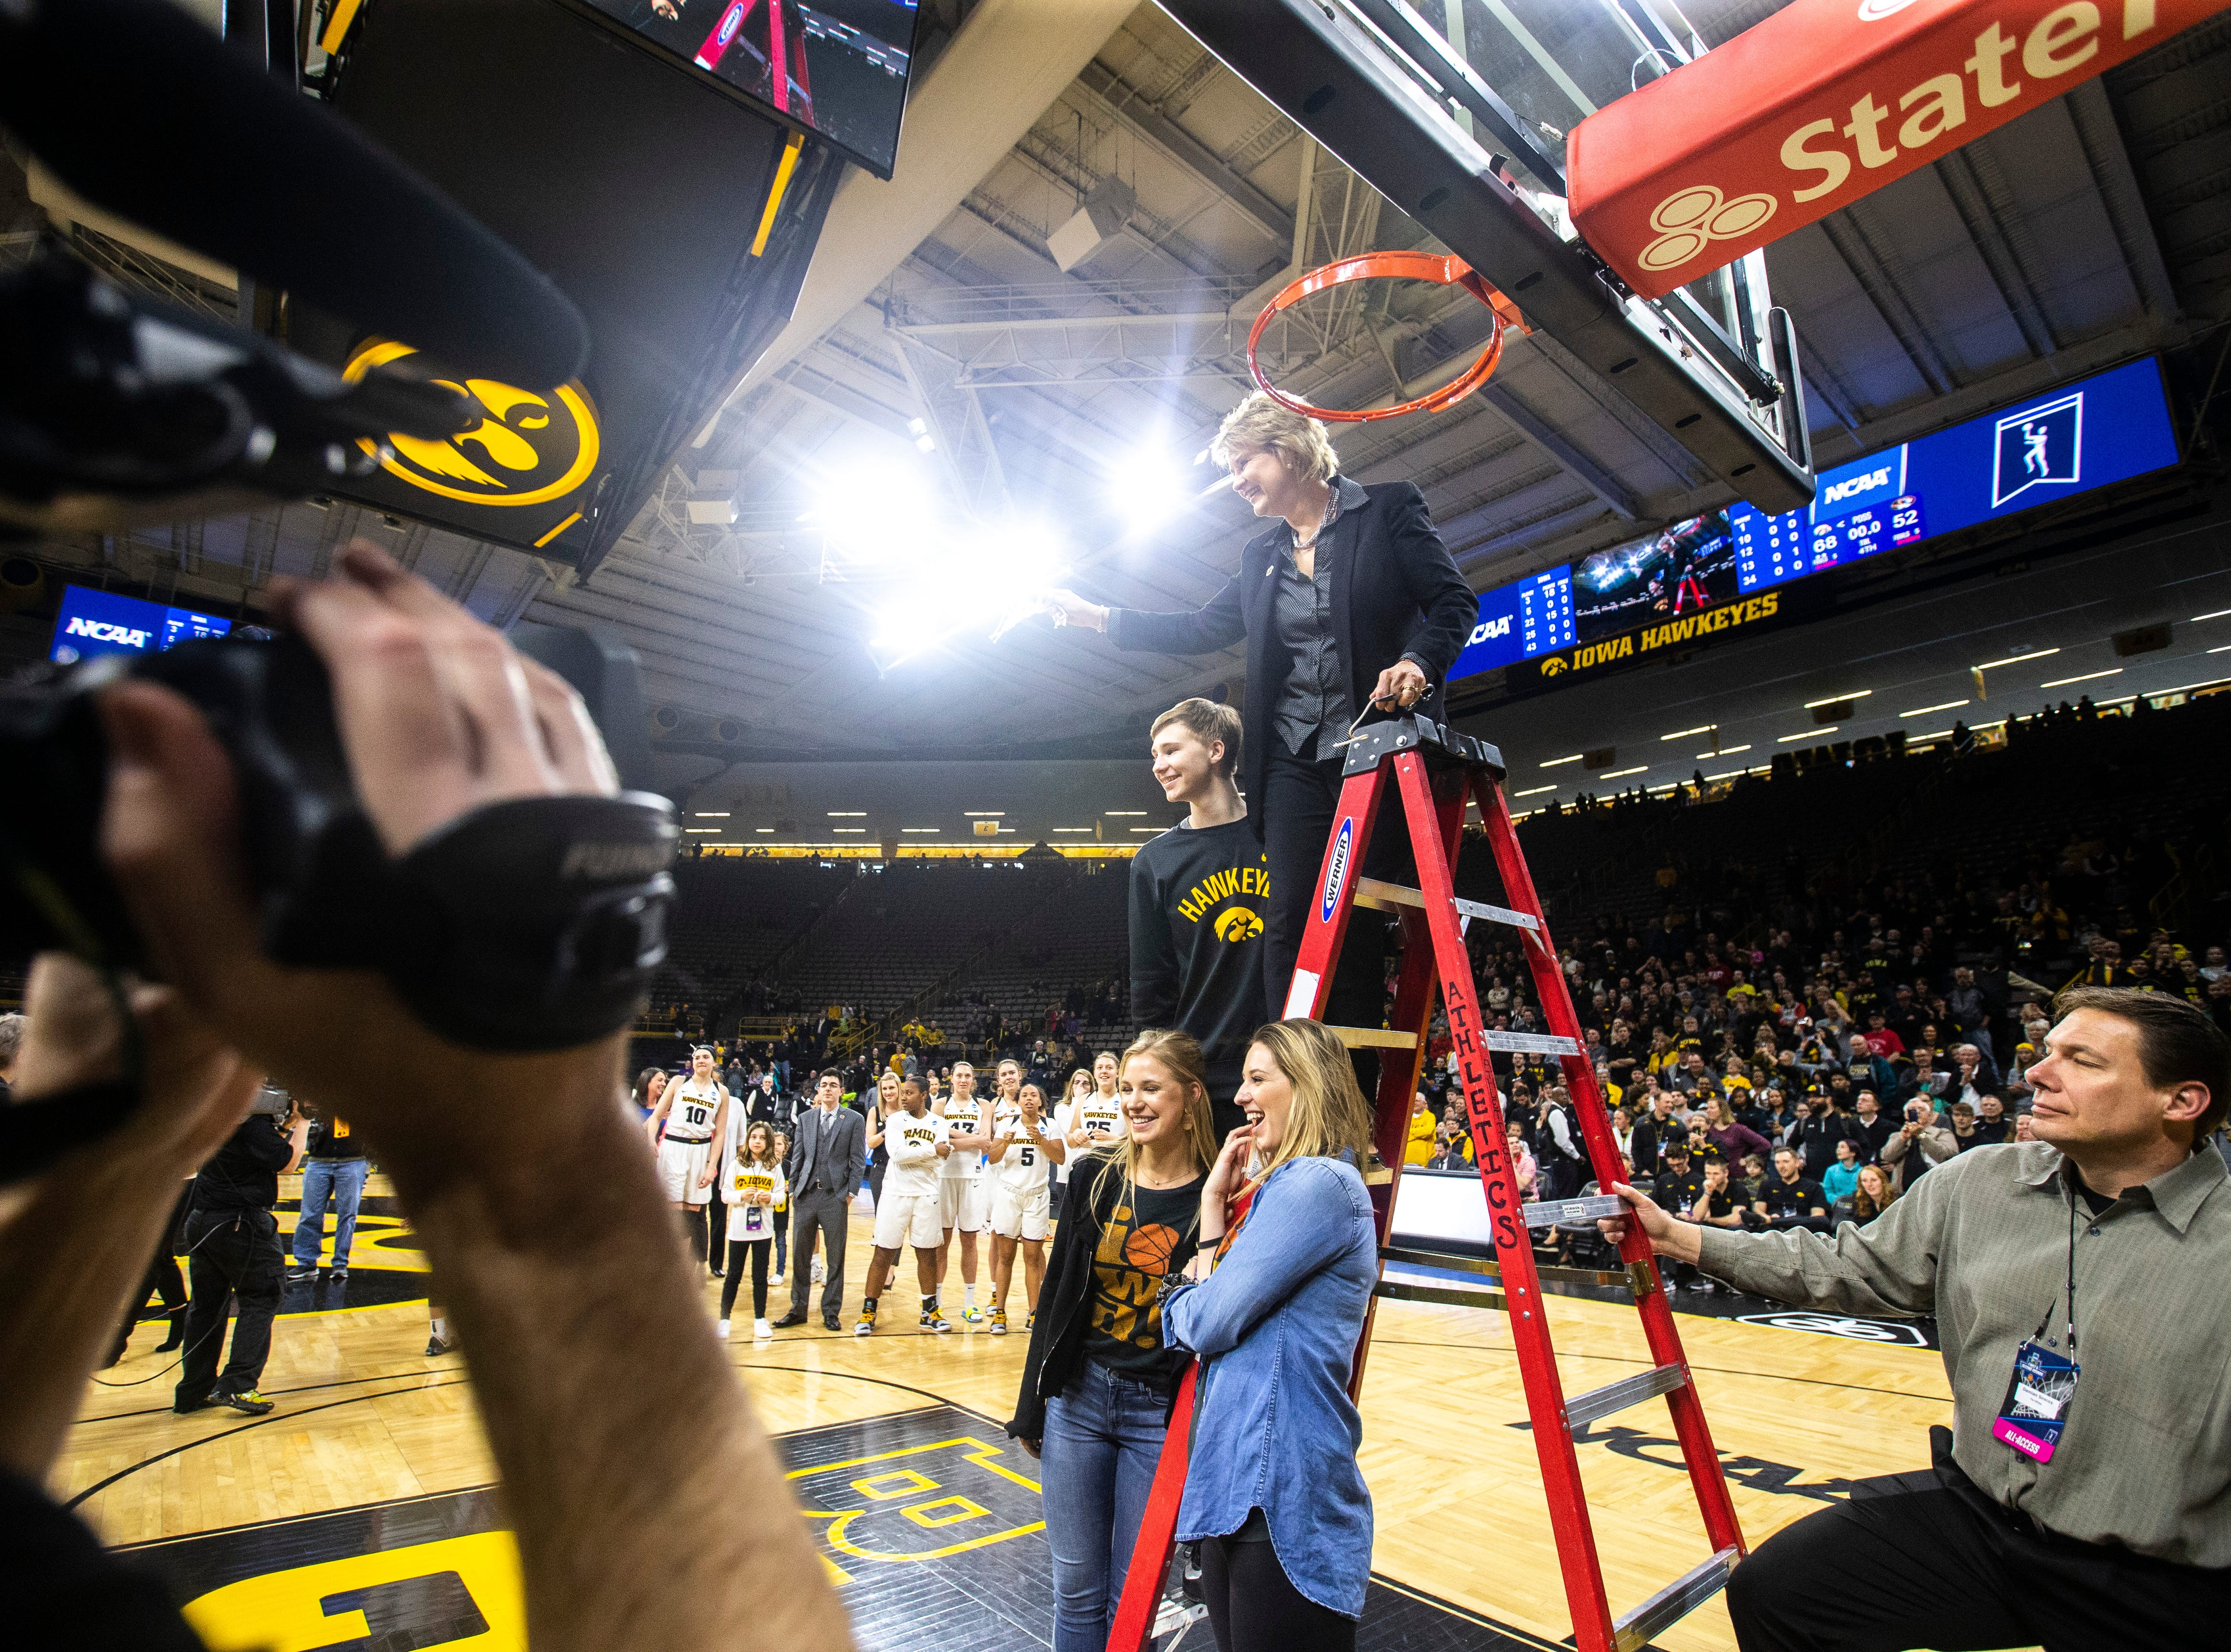 Iowa head coach Lisa Bluder poses for a photo with her children, Emma, David and Hannah after cutting down the nets on the court after a NCAA women's basketball tournament second-round game, Sunday, March 24, 2019, at Carver-Hawkeye Arena in Iowa City, Iowa.